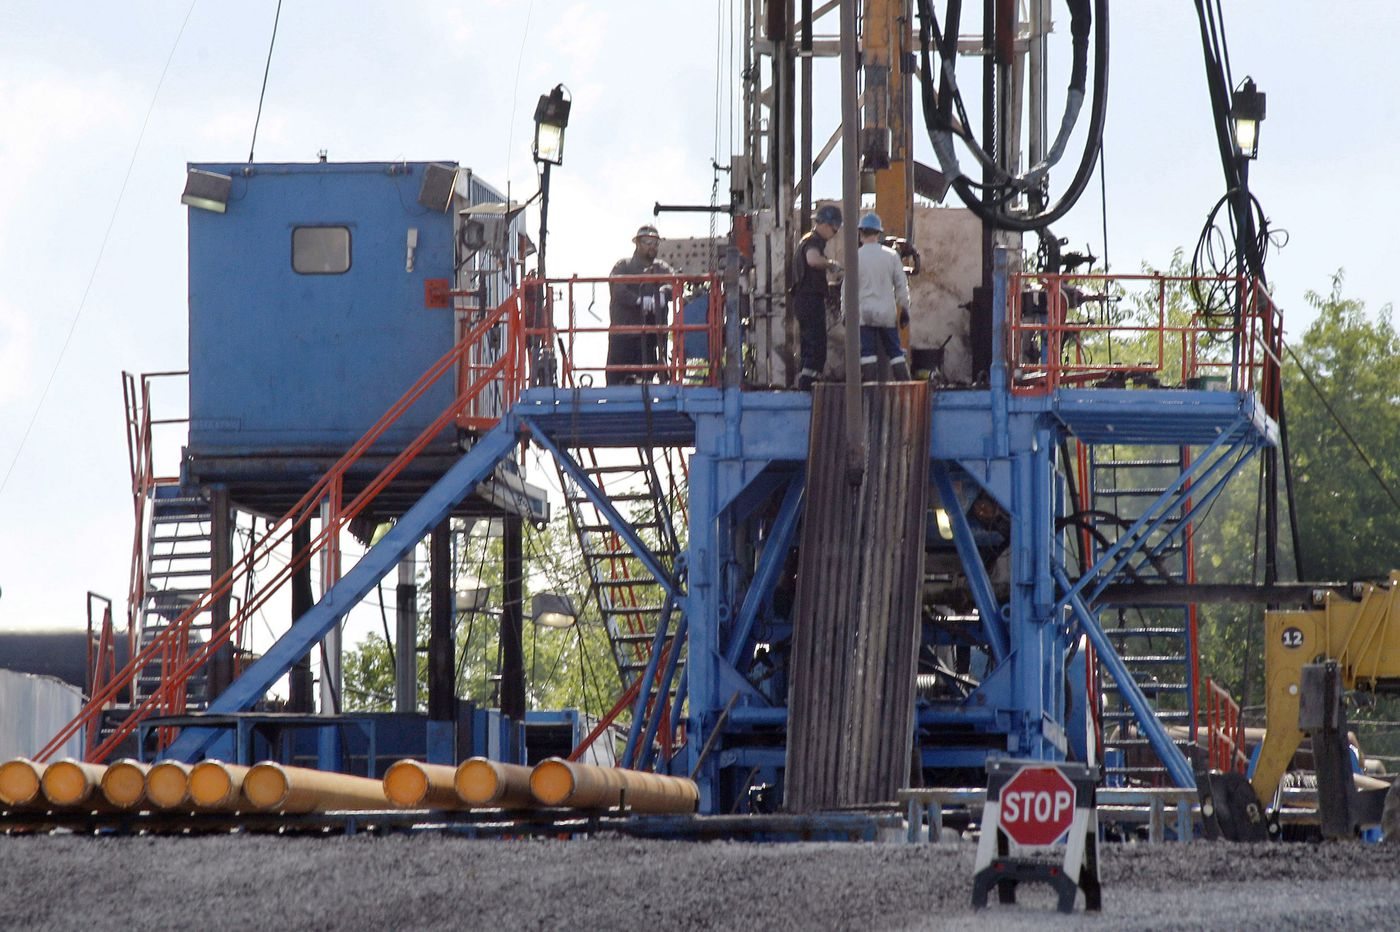 Gov. Wolf should move forward with methane regulations | Opinion